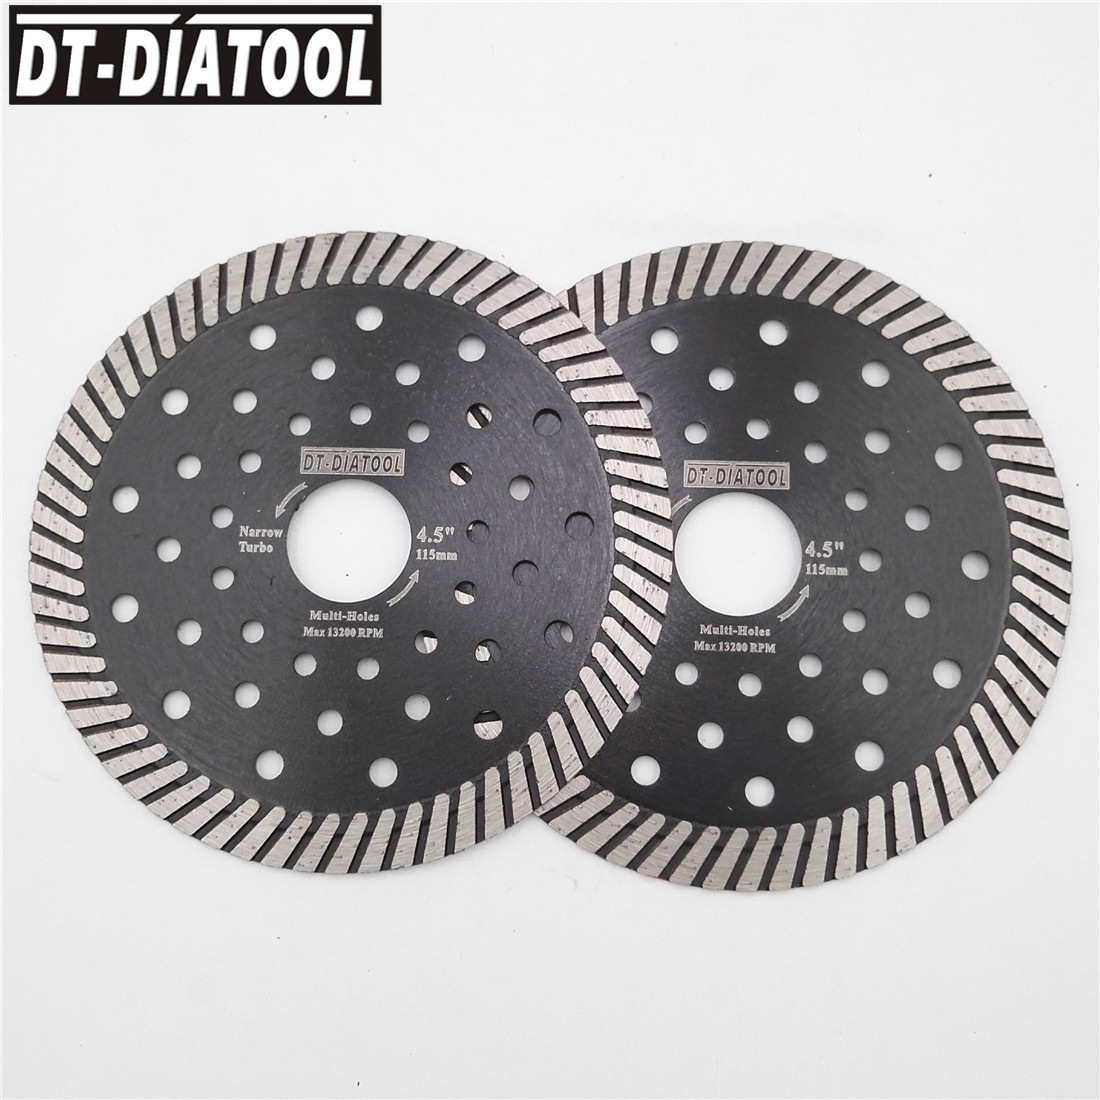 DT-DIATOOL 2pcs Diamond Narrow Turbo Saw Blades With Multi Hole Cutting Discs Granite Marble Concrete Masonry Diamond Wheel